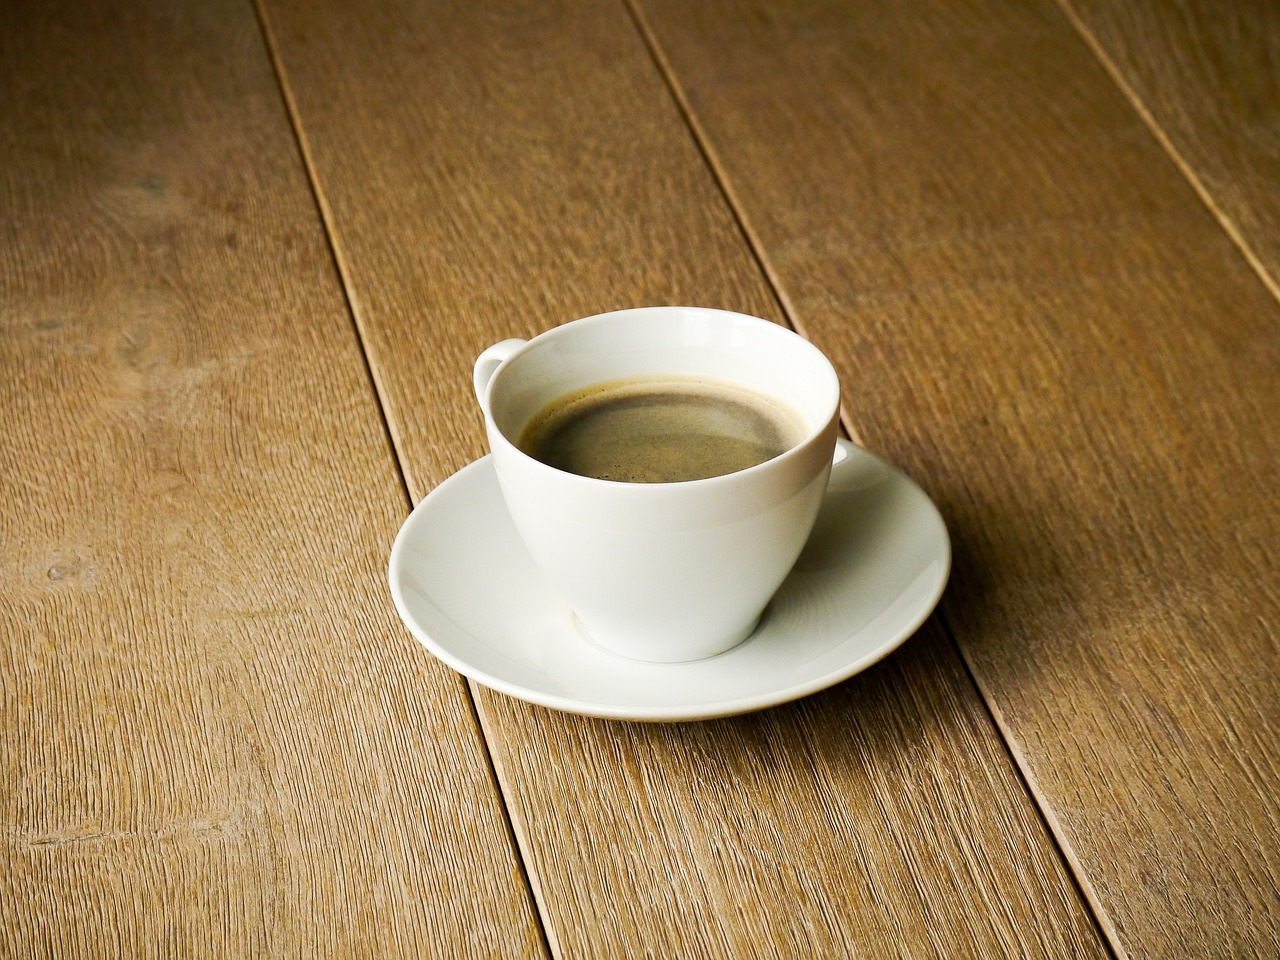 coffee,coffee cup,cup,beans,drink,coffee beans,spoon,saucer,porcelain,benefit from,coffee foam,crema,hot,caffeine,pick-me-up,aroma,coffee break,taste,relaxation,chocolate,time out,wood,wood floor,free pictures, free photos, free images, royalty free, free illustrations